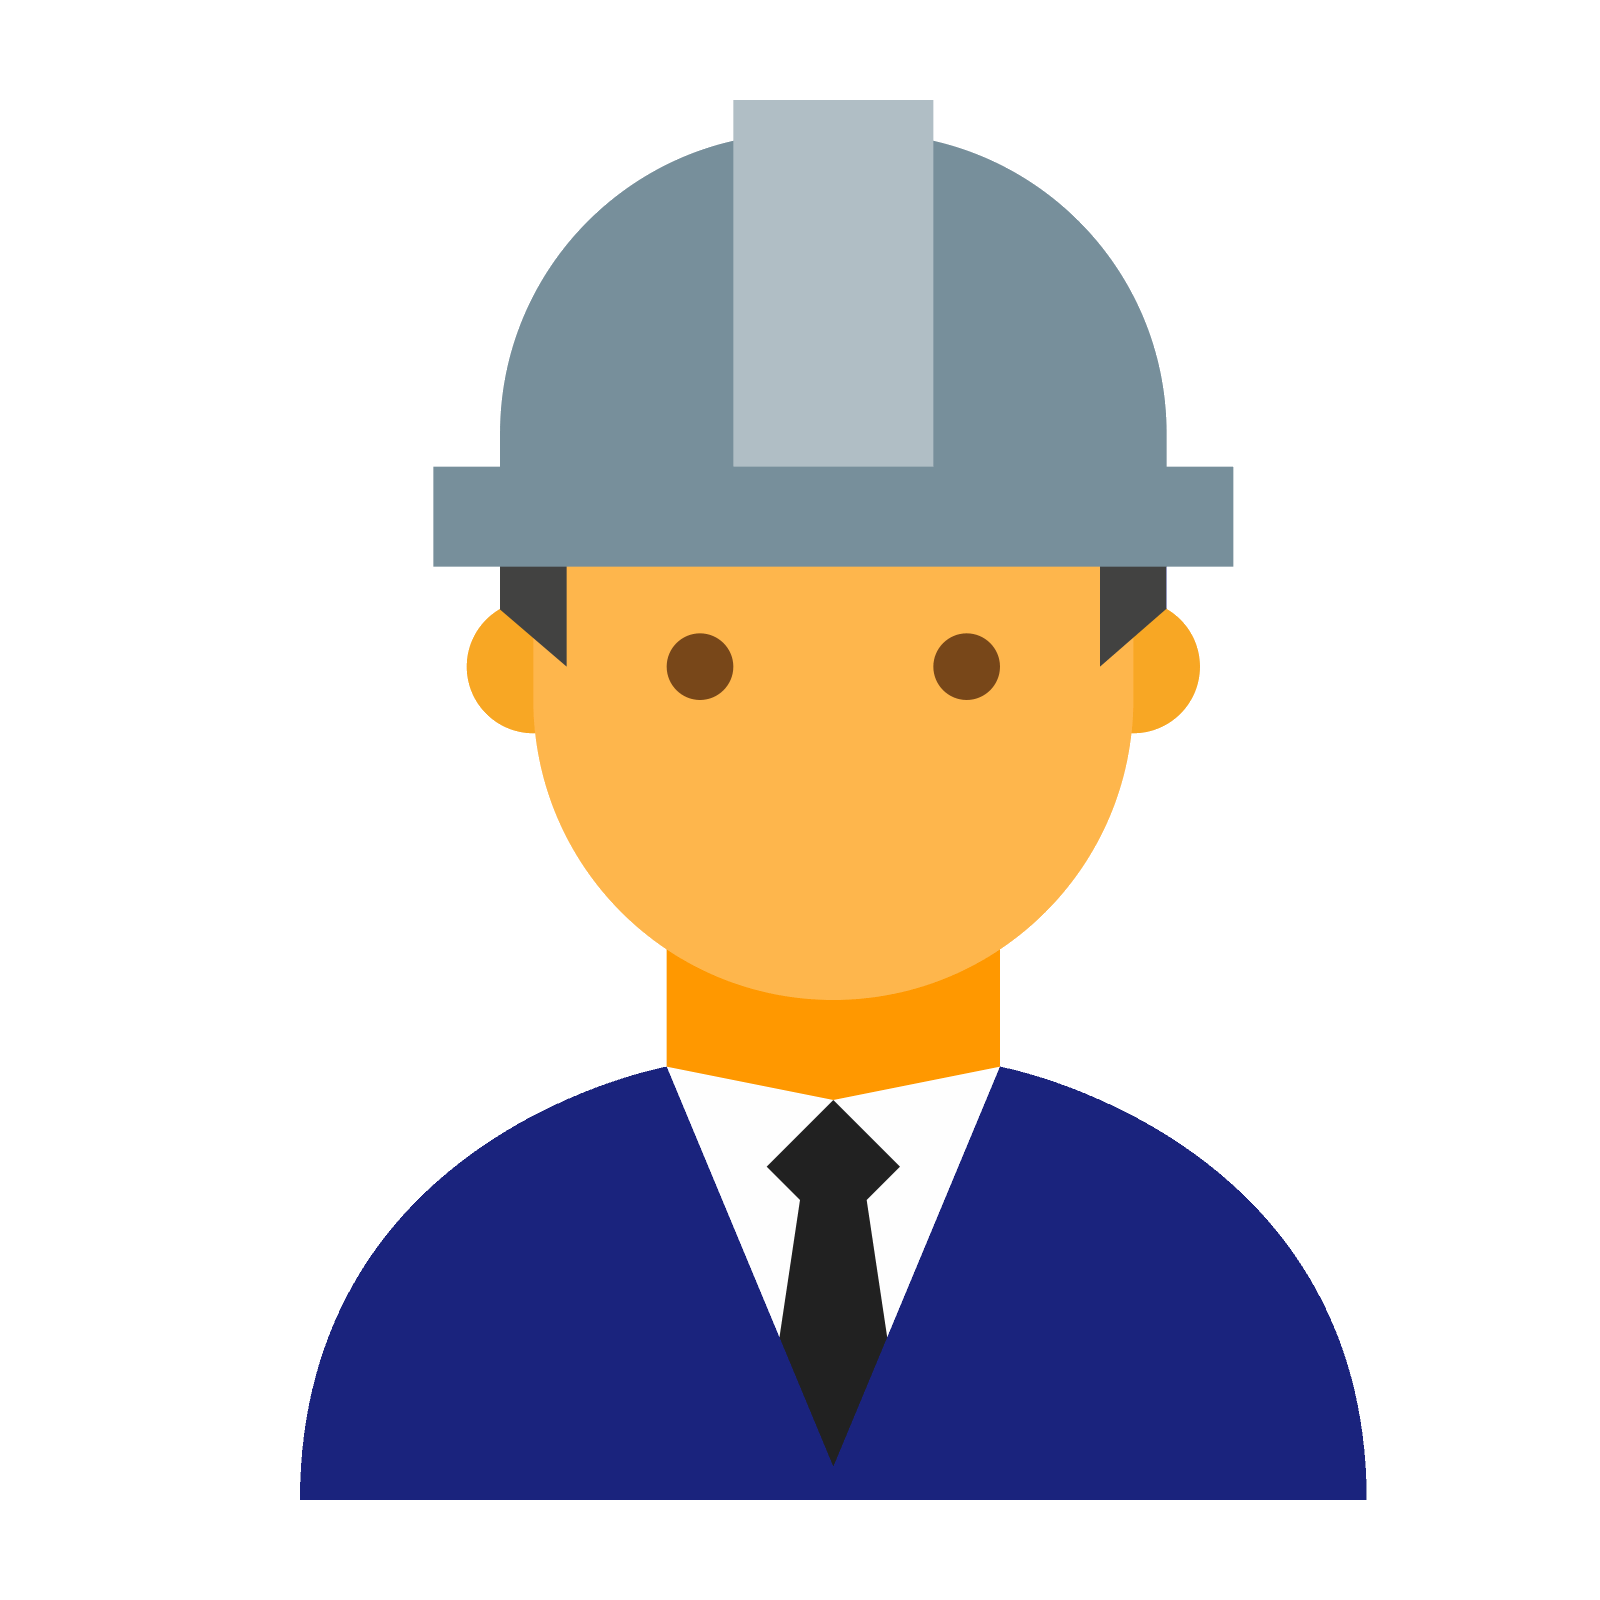 Icon free download png. Engineer vector banner freeuse